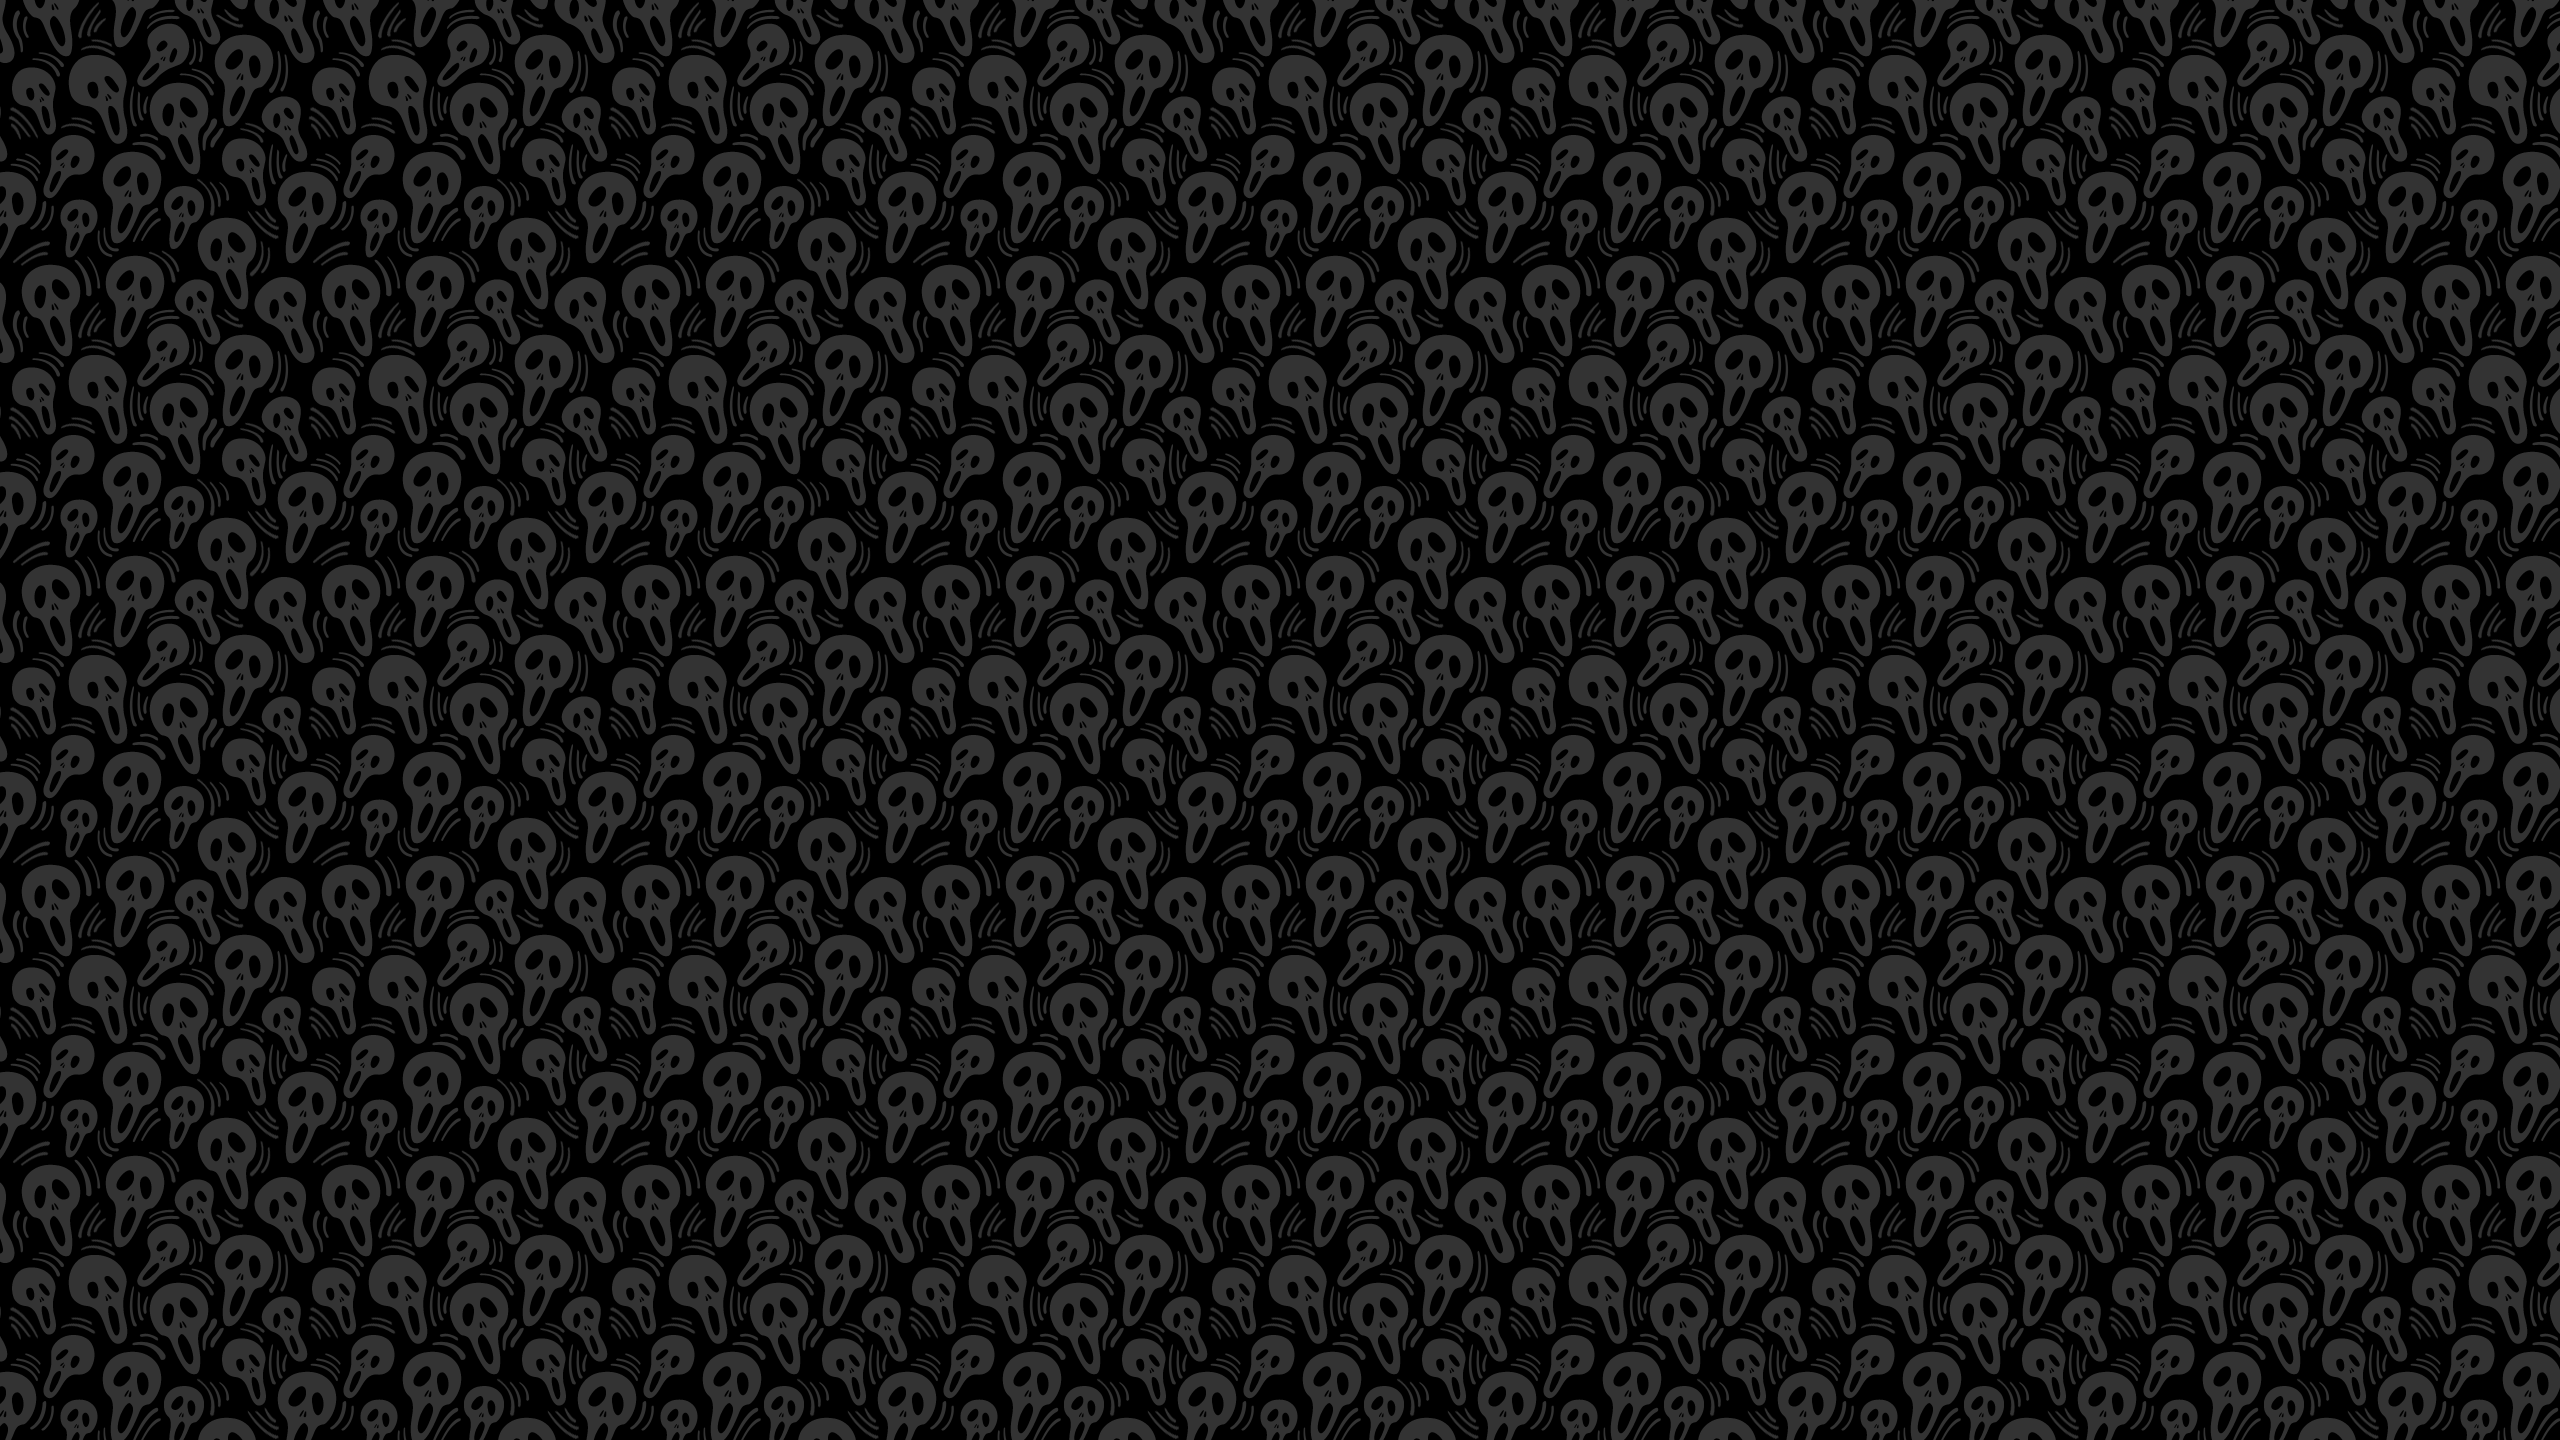 Skull Background Tumblr Posted By Samantha Simpson